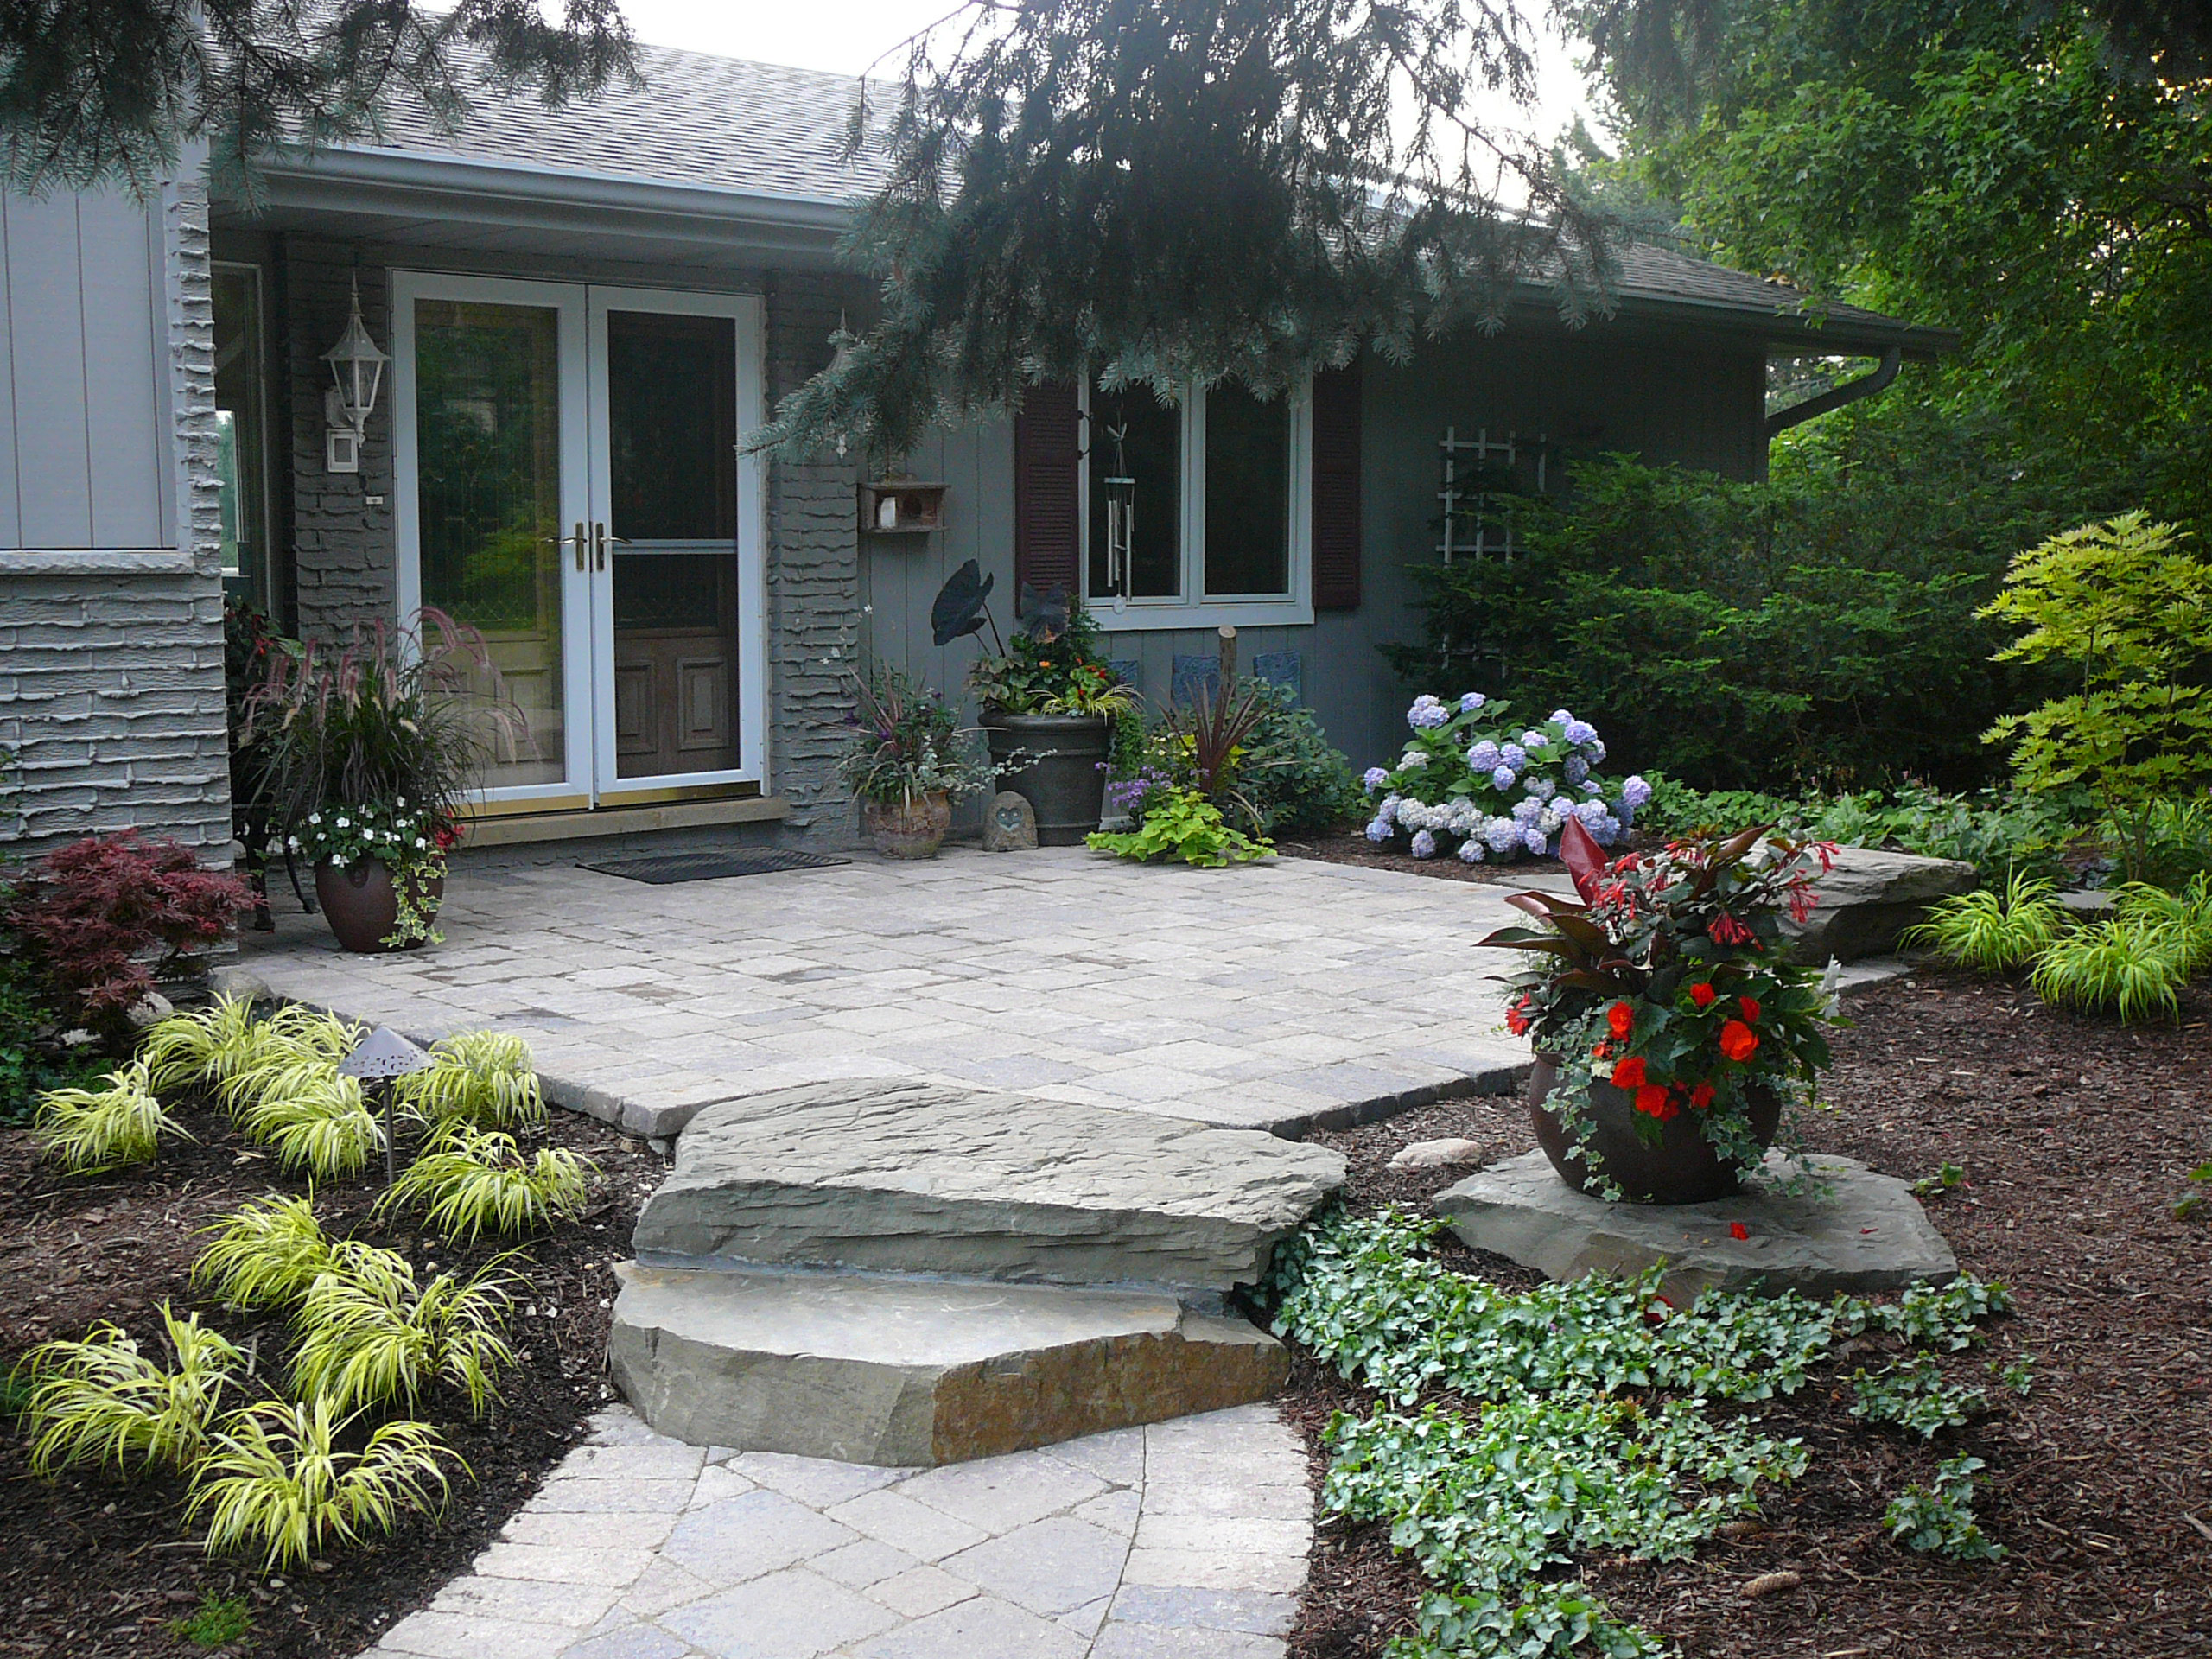 This large paver stone patio serves as a relaxing and inviting entryway to this Crystal Lake home.